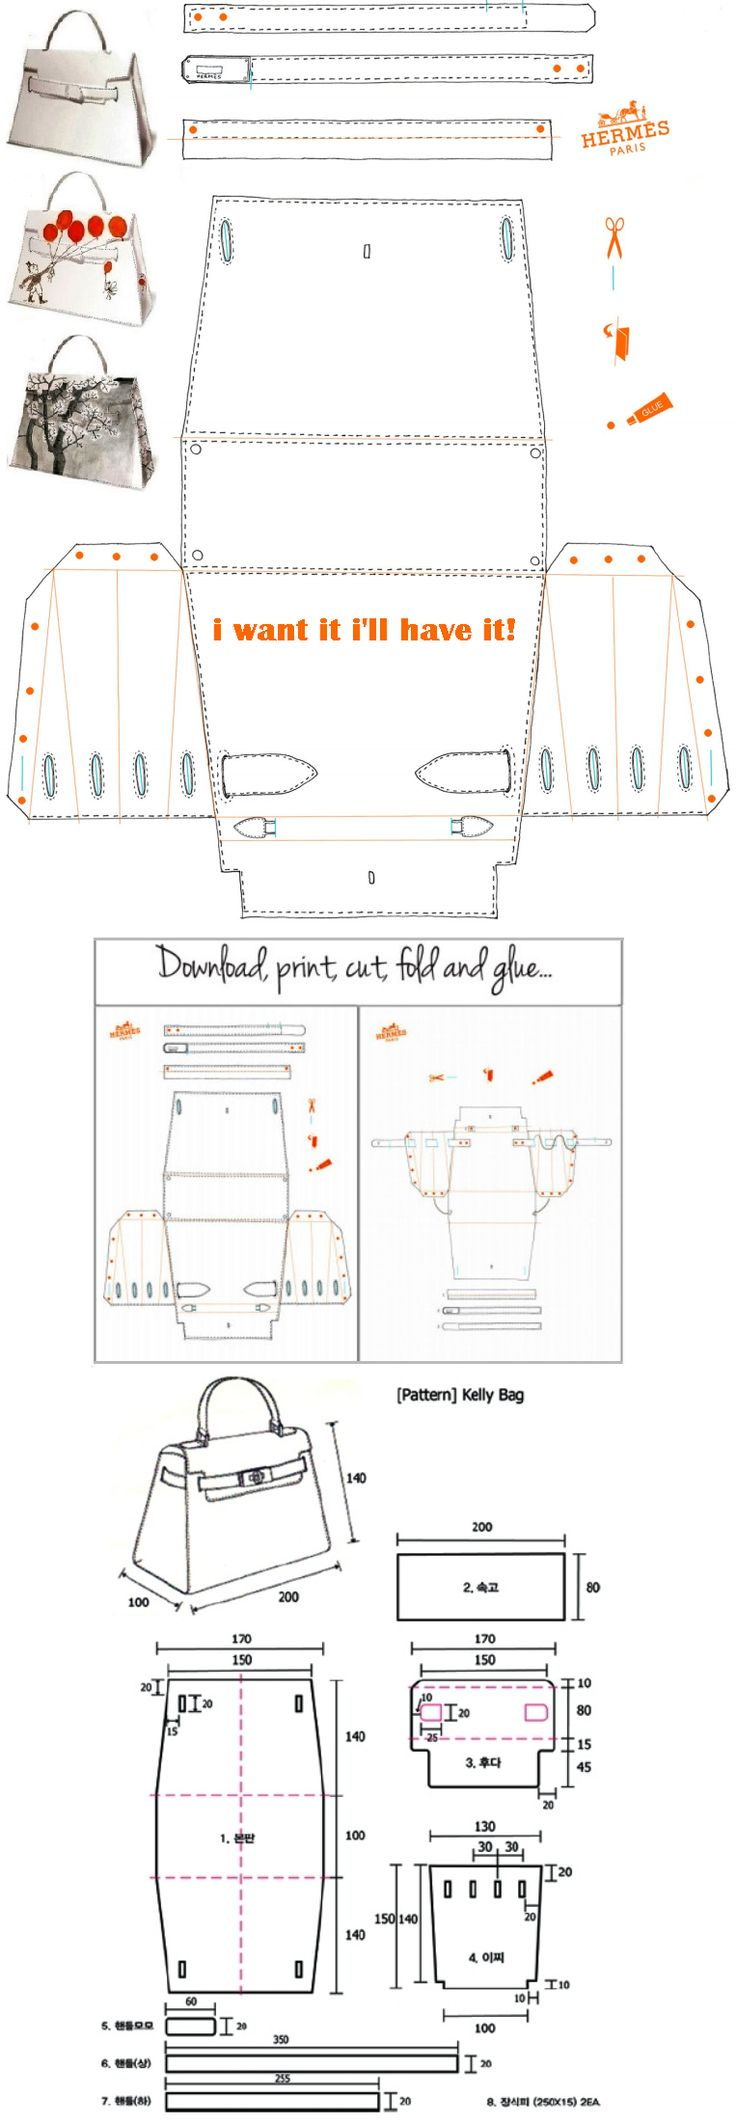 Hermès Kelly Bag  Origami Paper Craft - i want it i'll have it!   http://yesmissy.files.wordpress.com/2013/01/kelly_papier-plain.pdf